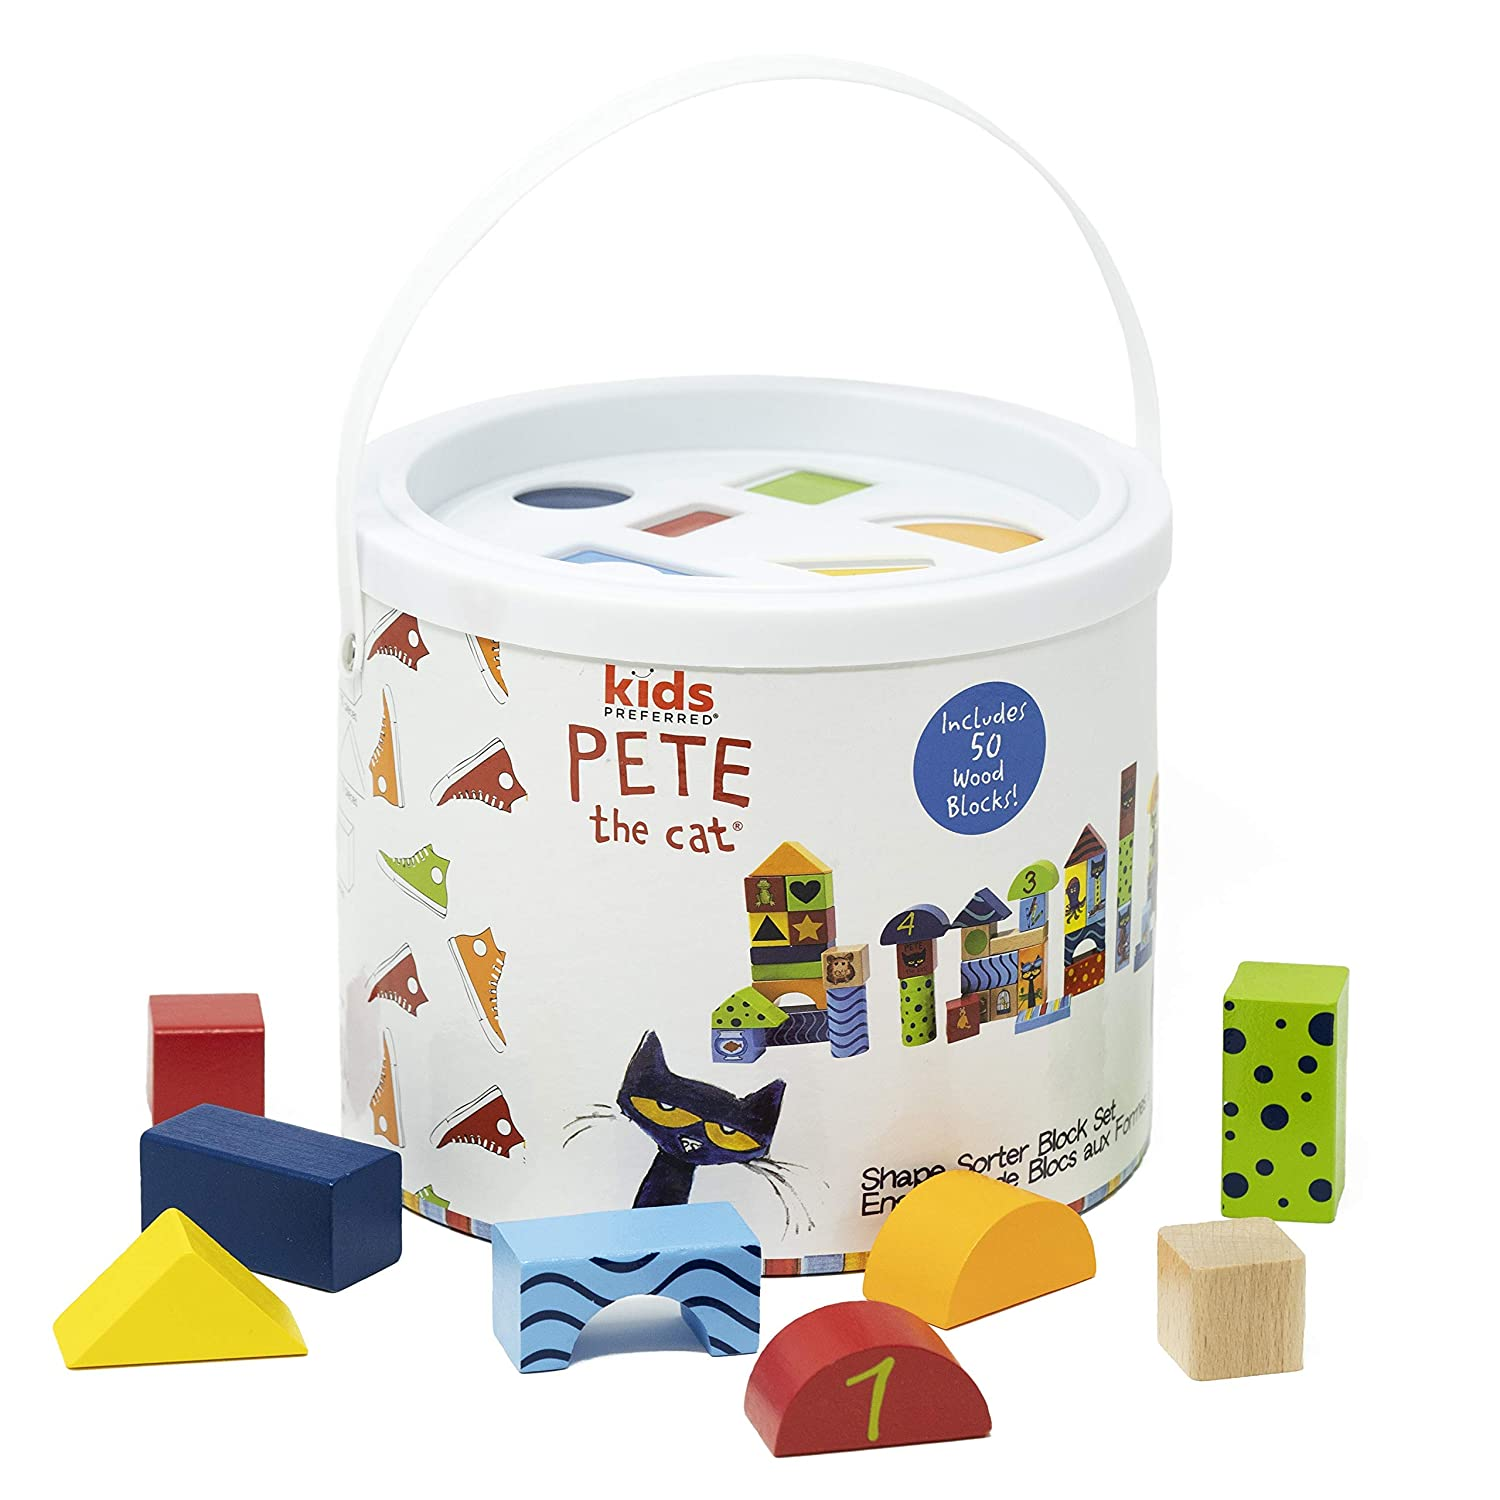 Pete The Cat - Wood Stacking Block Set - 50 Pieces